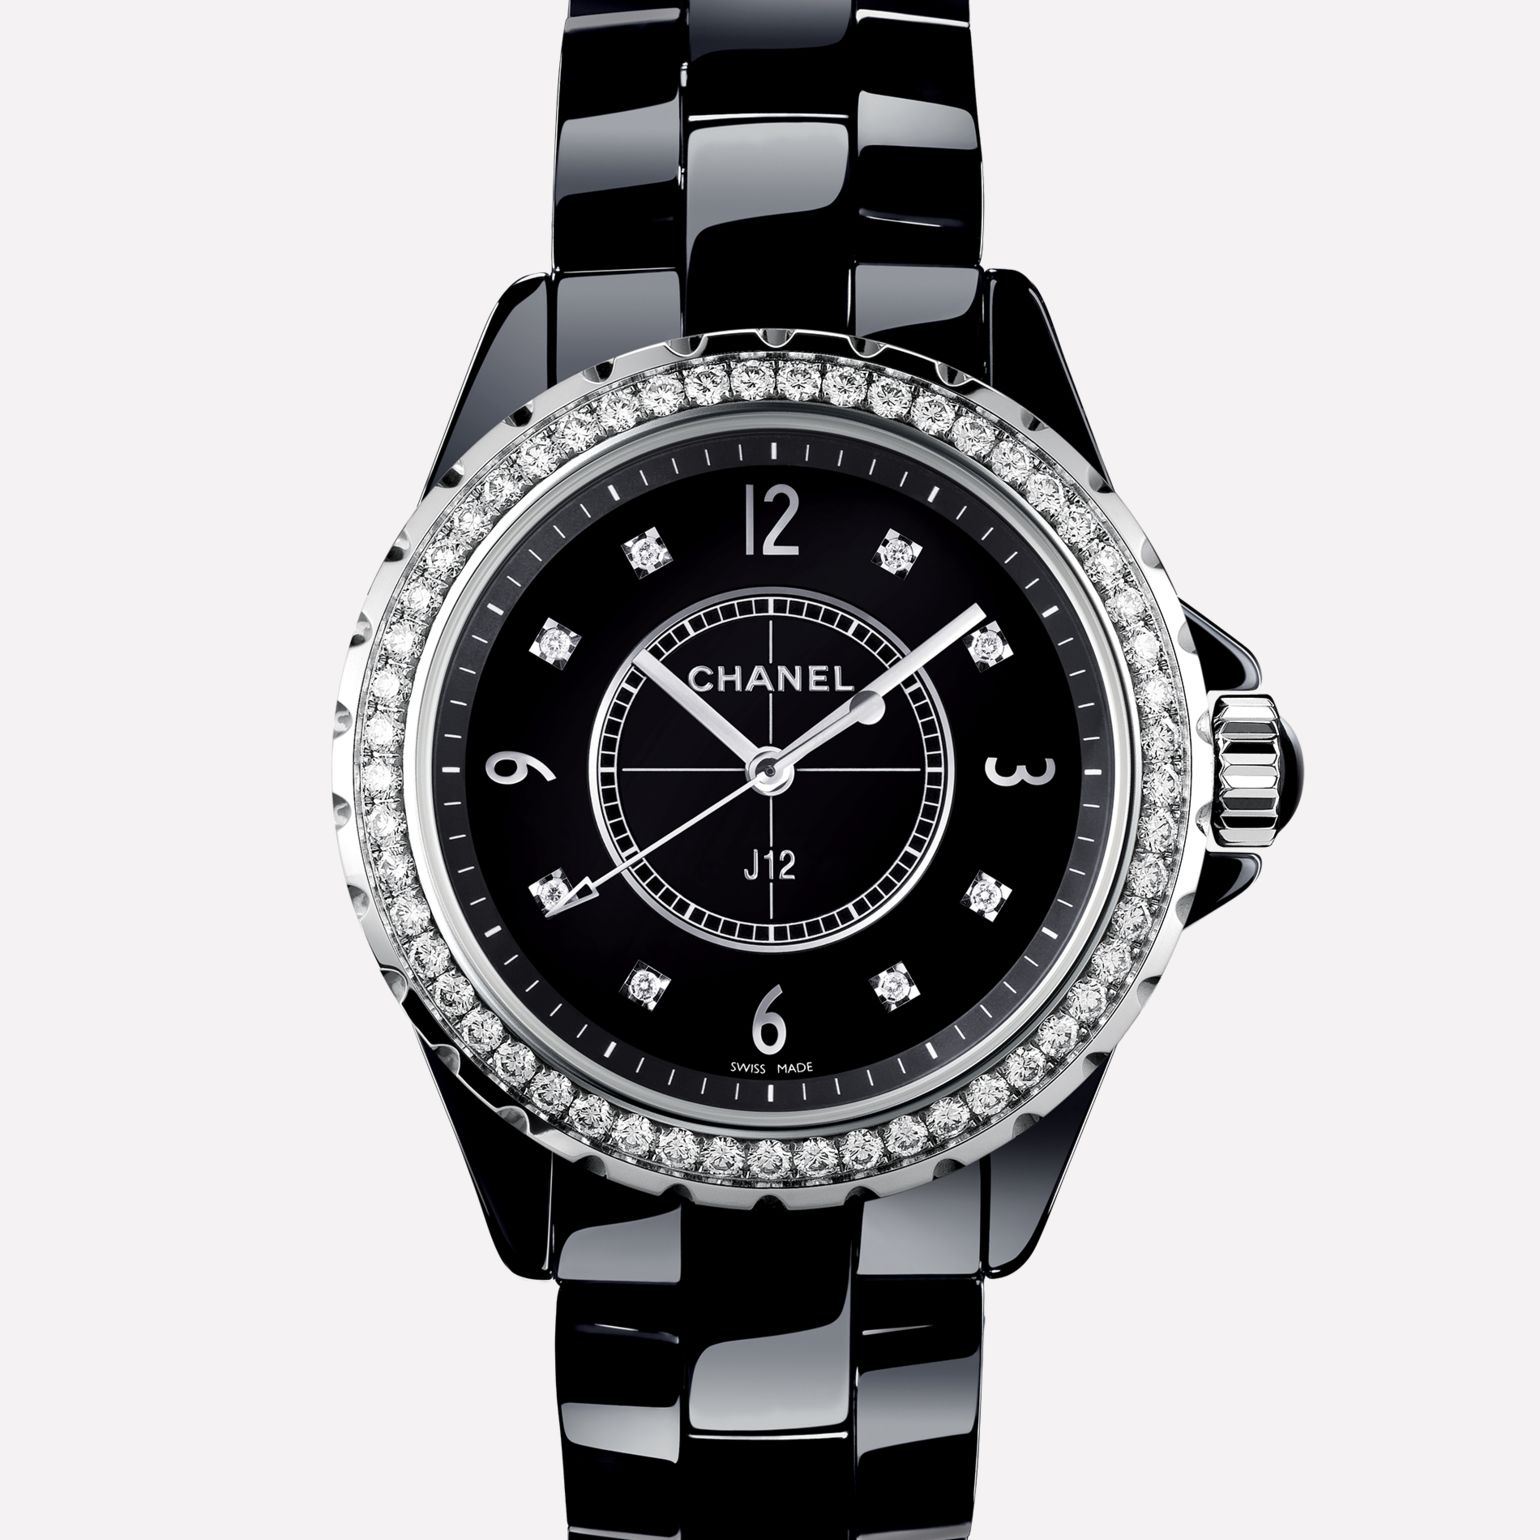 J12 Black ceramic and steel, diamond bezel and indicators